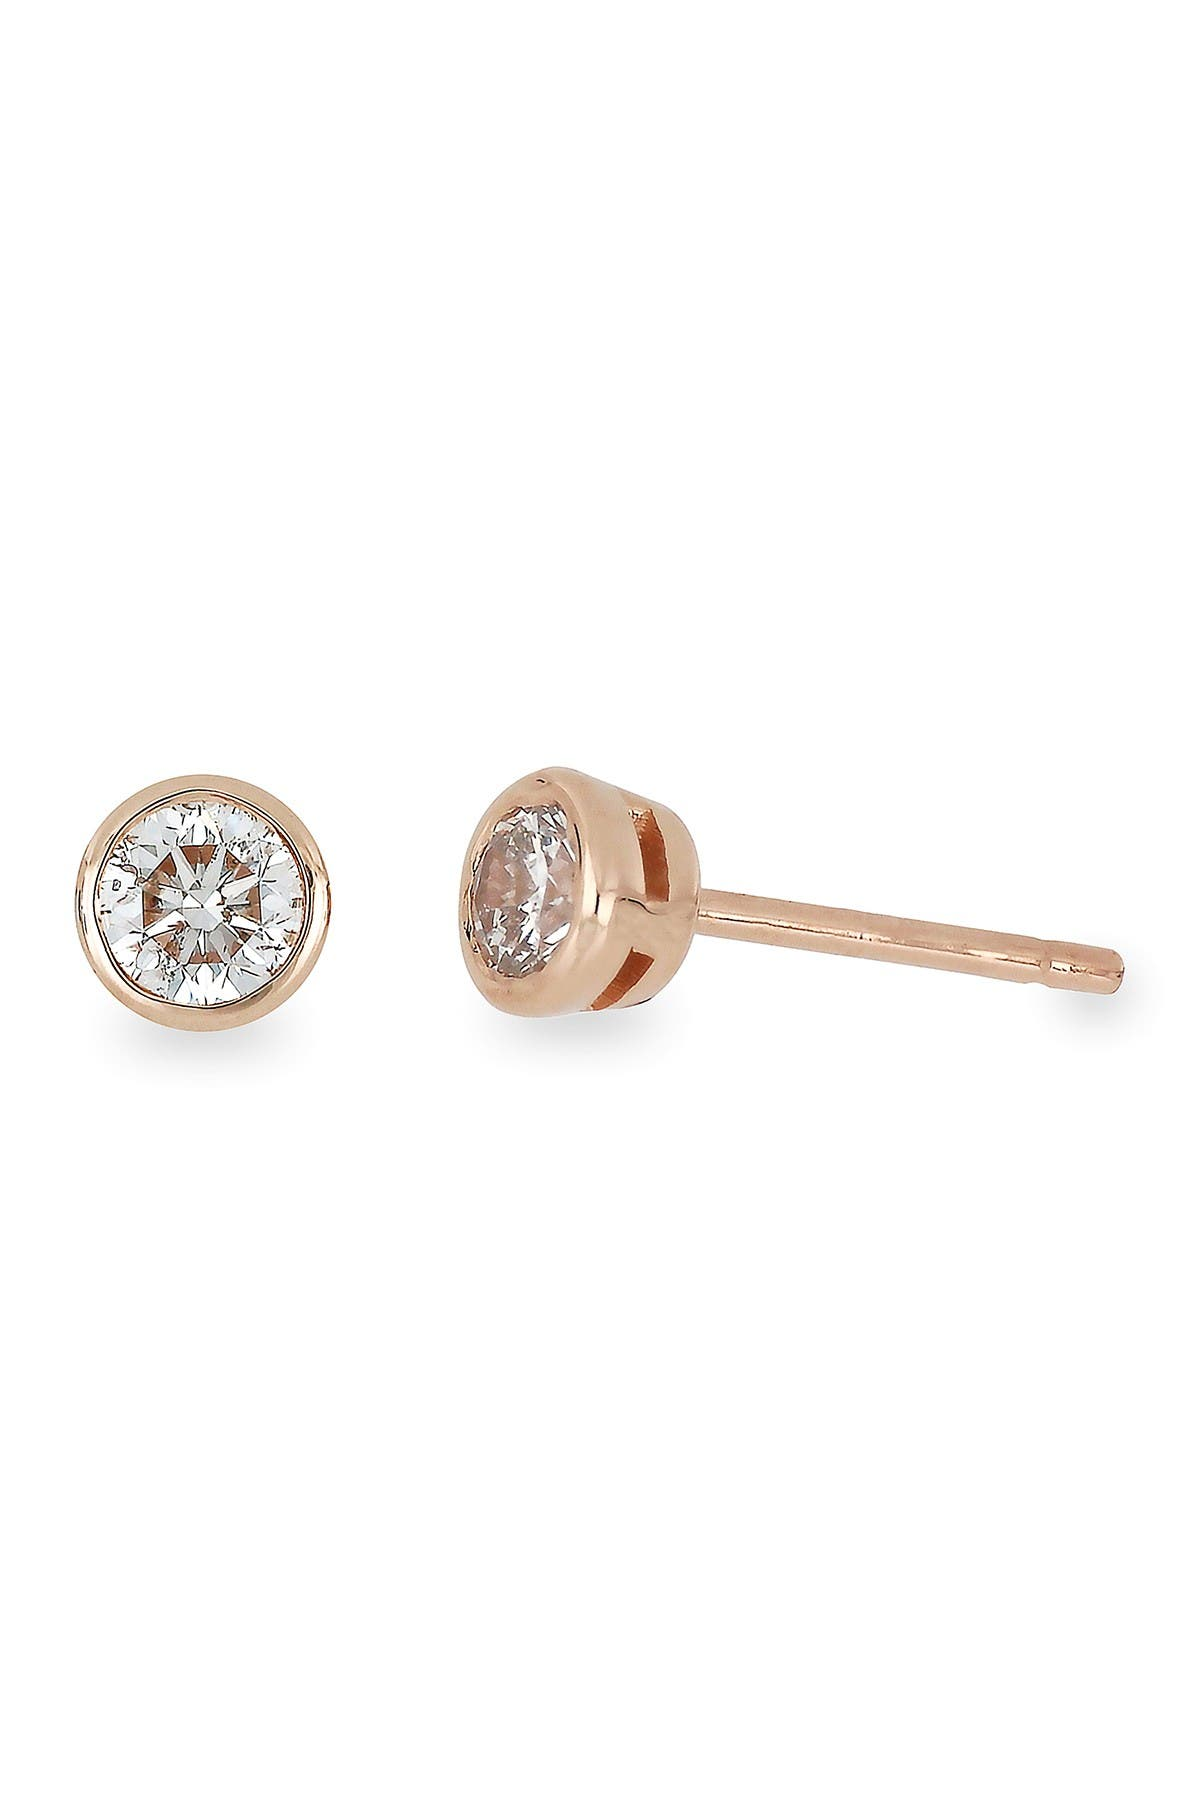 Image of Bony Levy 14K Gold Round-Cut Diamond Stud Earrings - 0.75 ctw